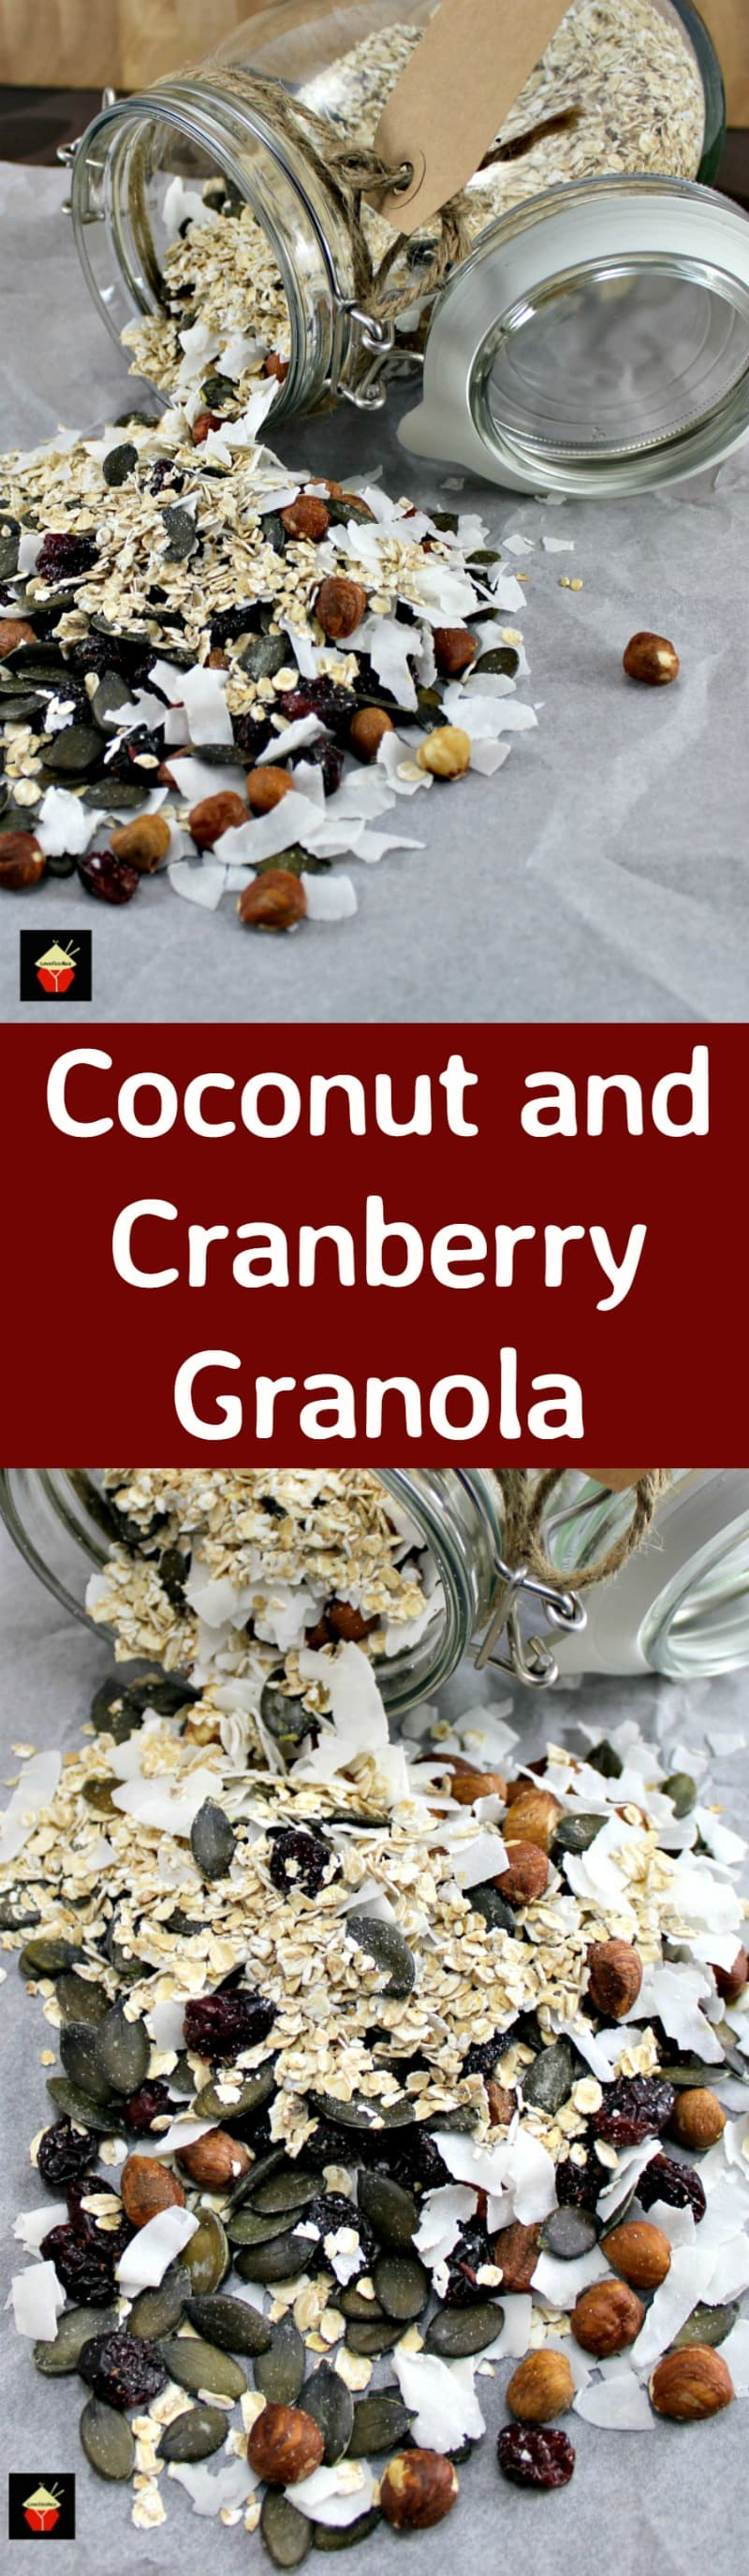 Coconut and Cranberry Granola. A really flexible recipe allowing you to choose the ingredients you love the most! Make up as lovely gifts or prepare for your own eating. It's an easy recipe and will store nicely so you can make ahead. | Lovefoodies.com